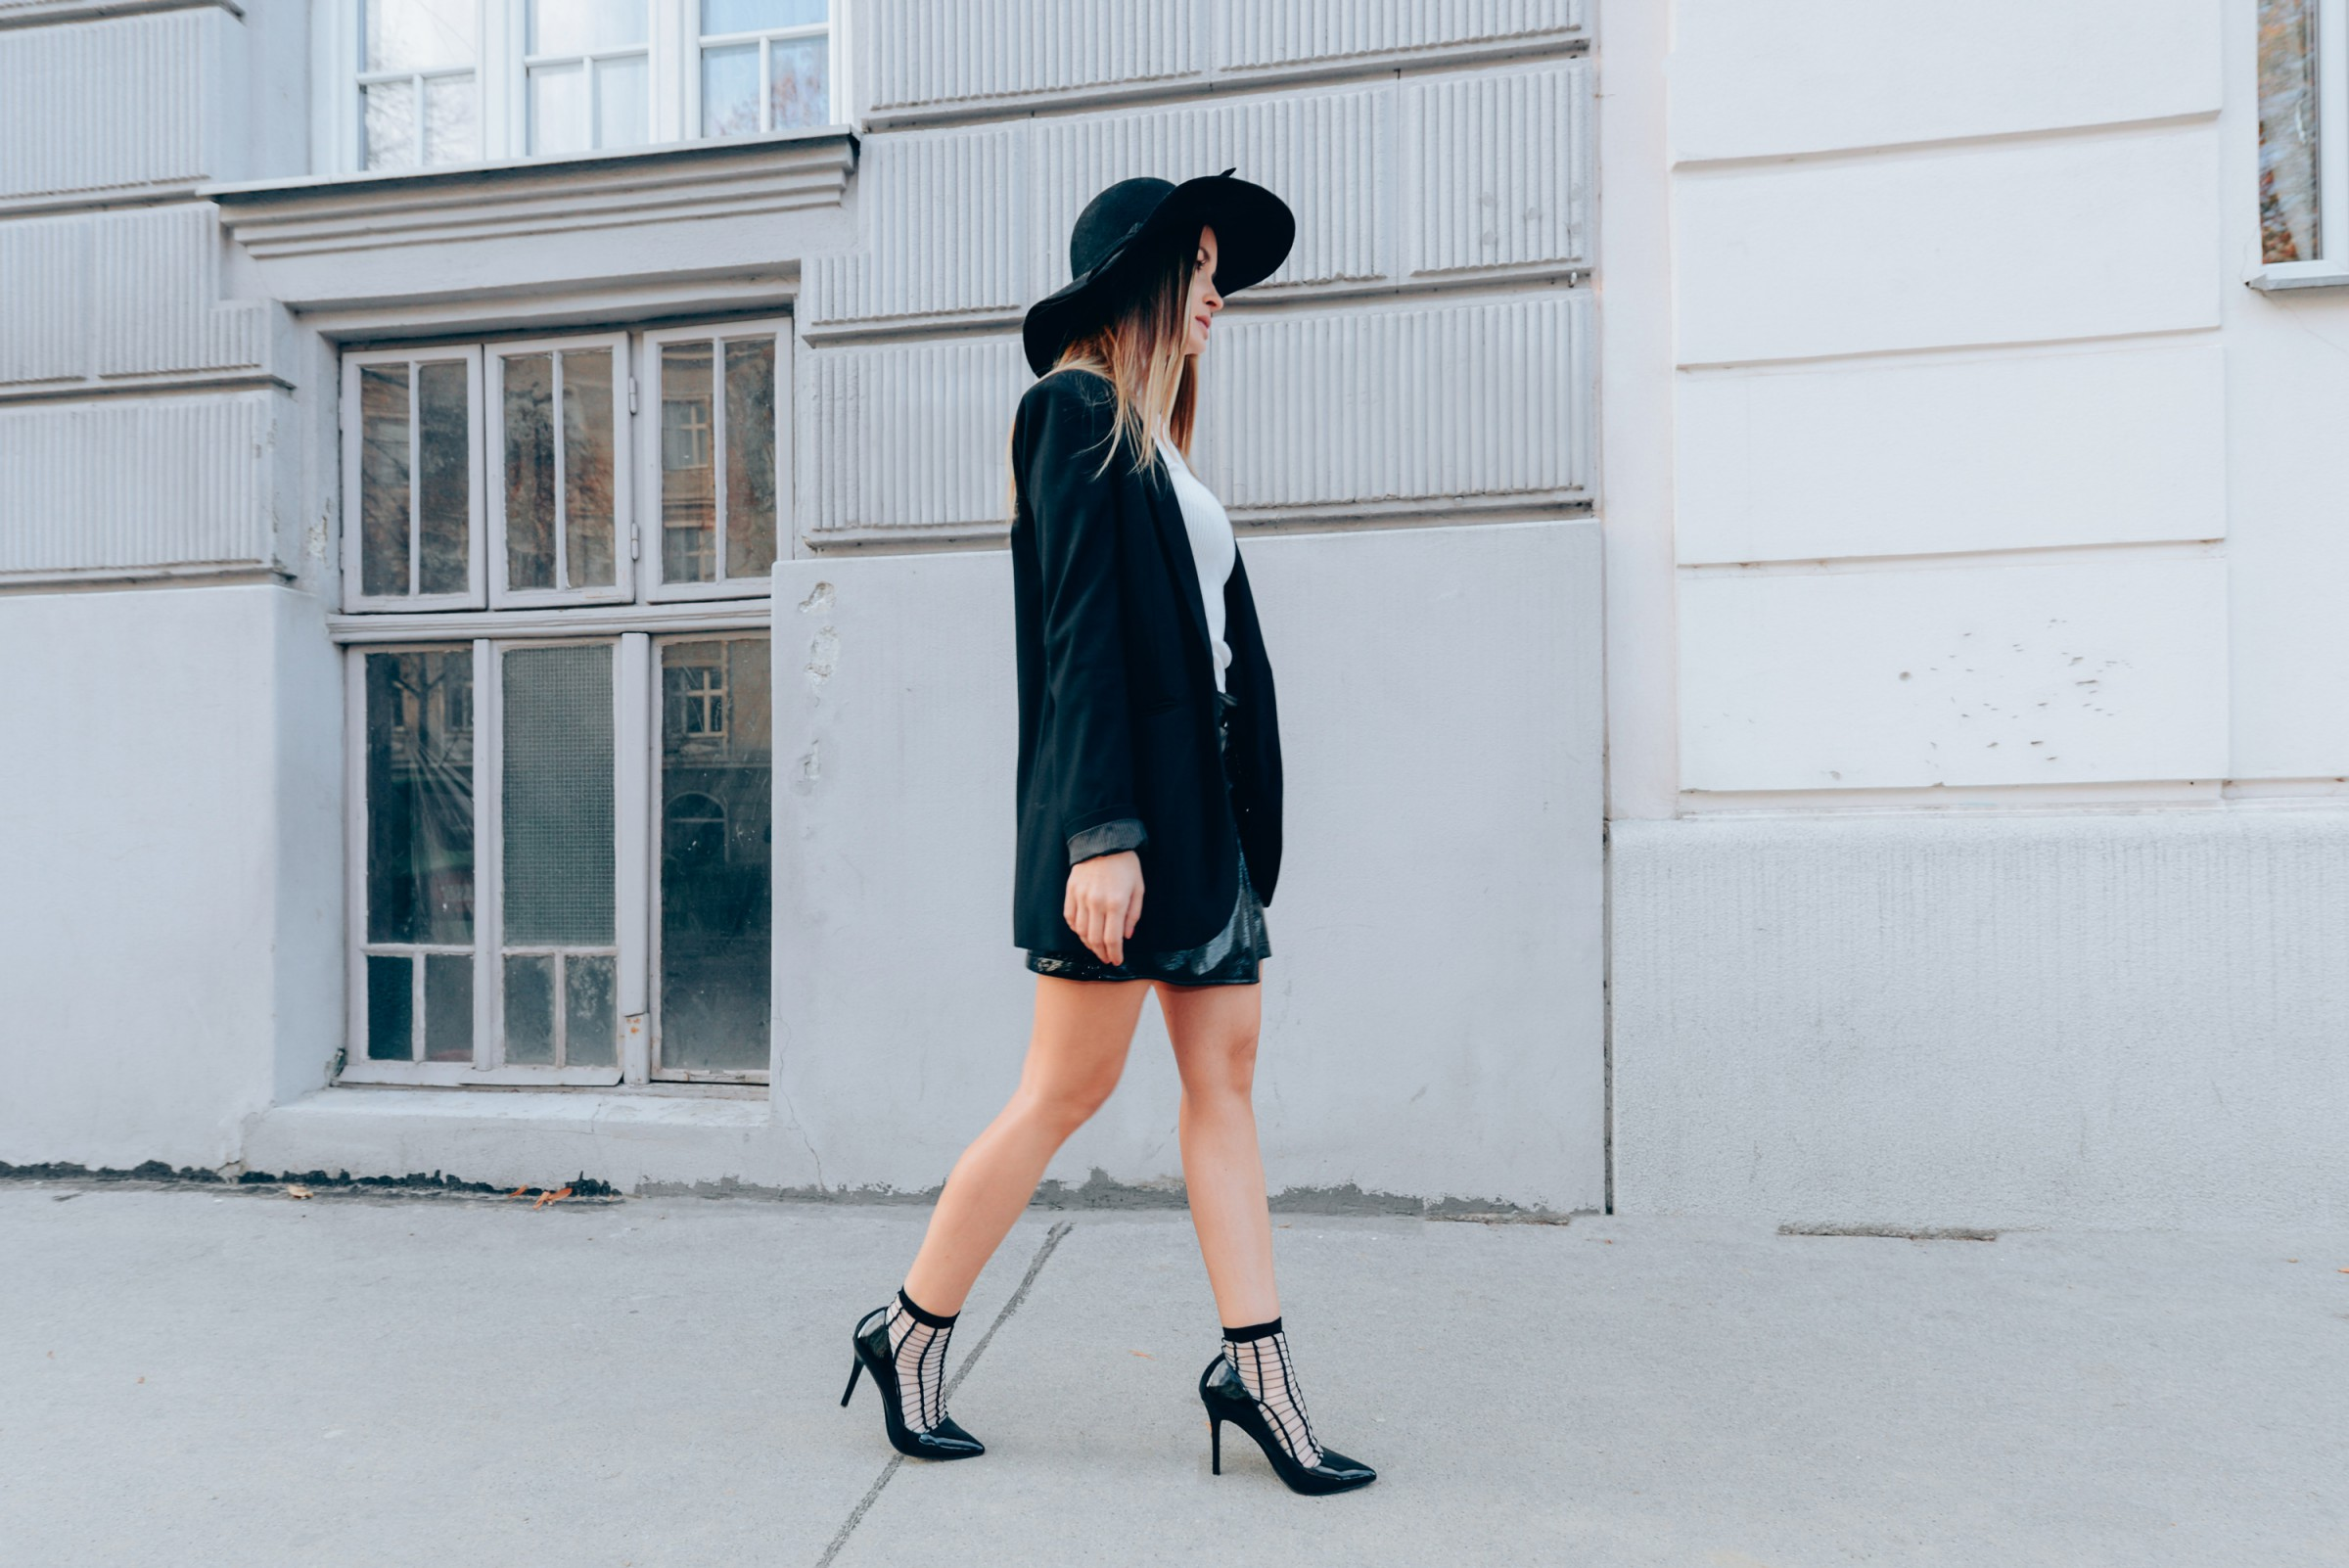 high-heels-and-socks-purstyle-stylingtipp-woma-wien